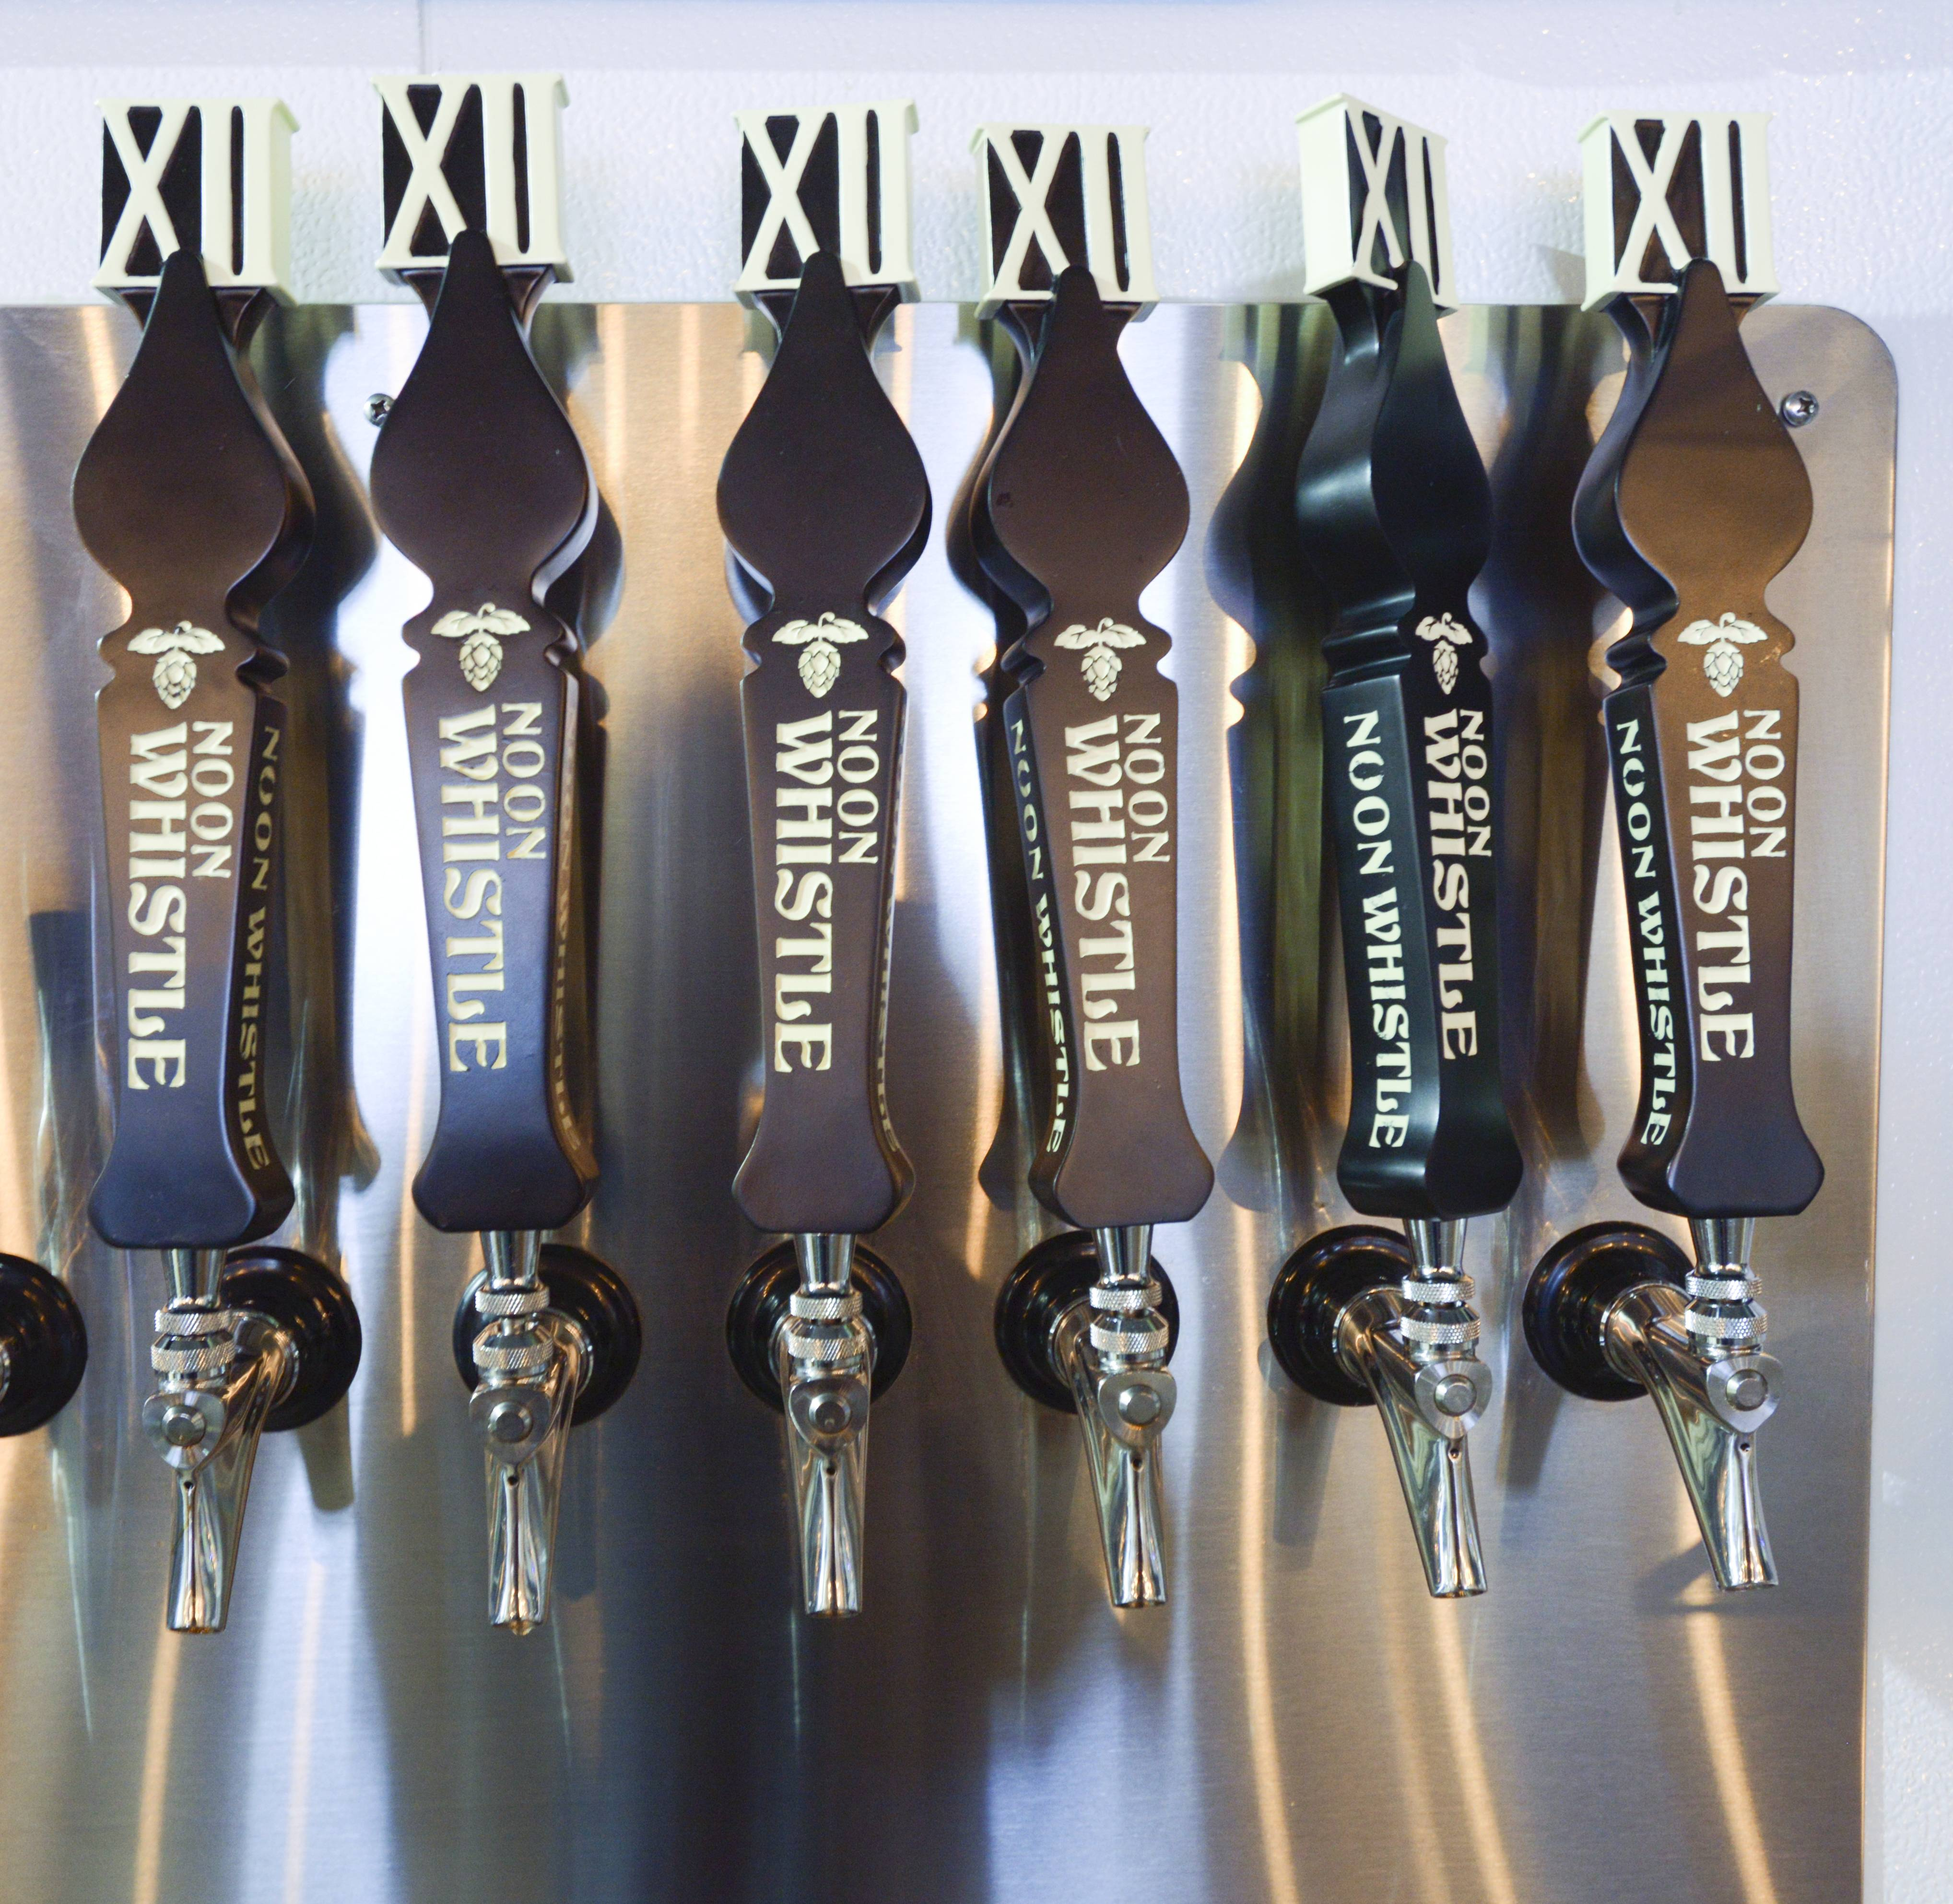 Tap selections rotate at Noon Whistle Brewing in Lombard.